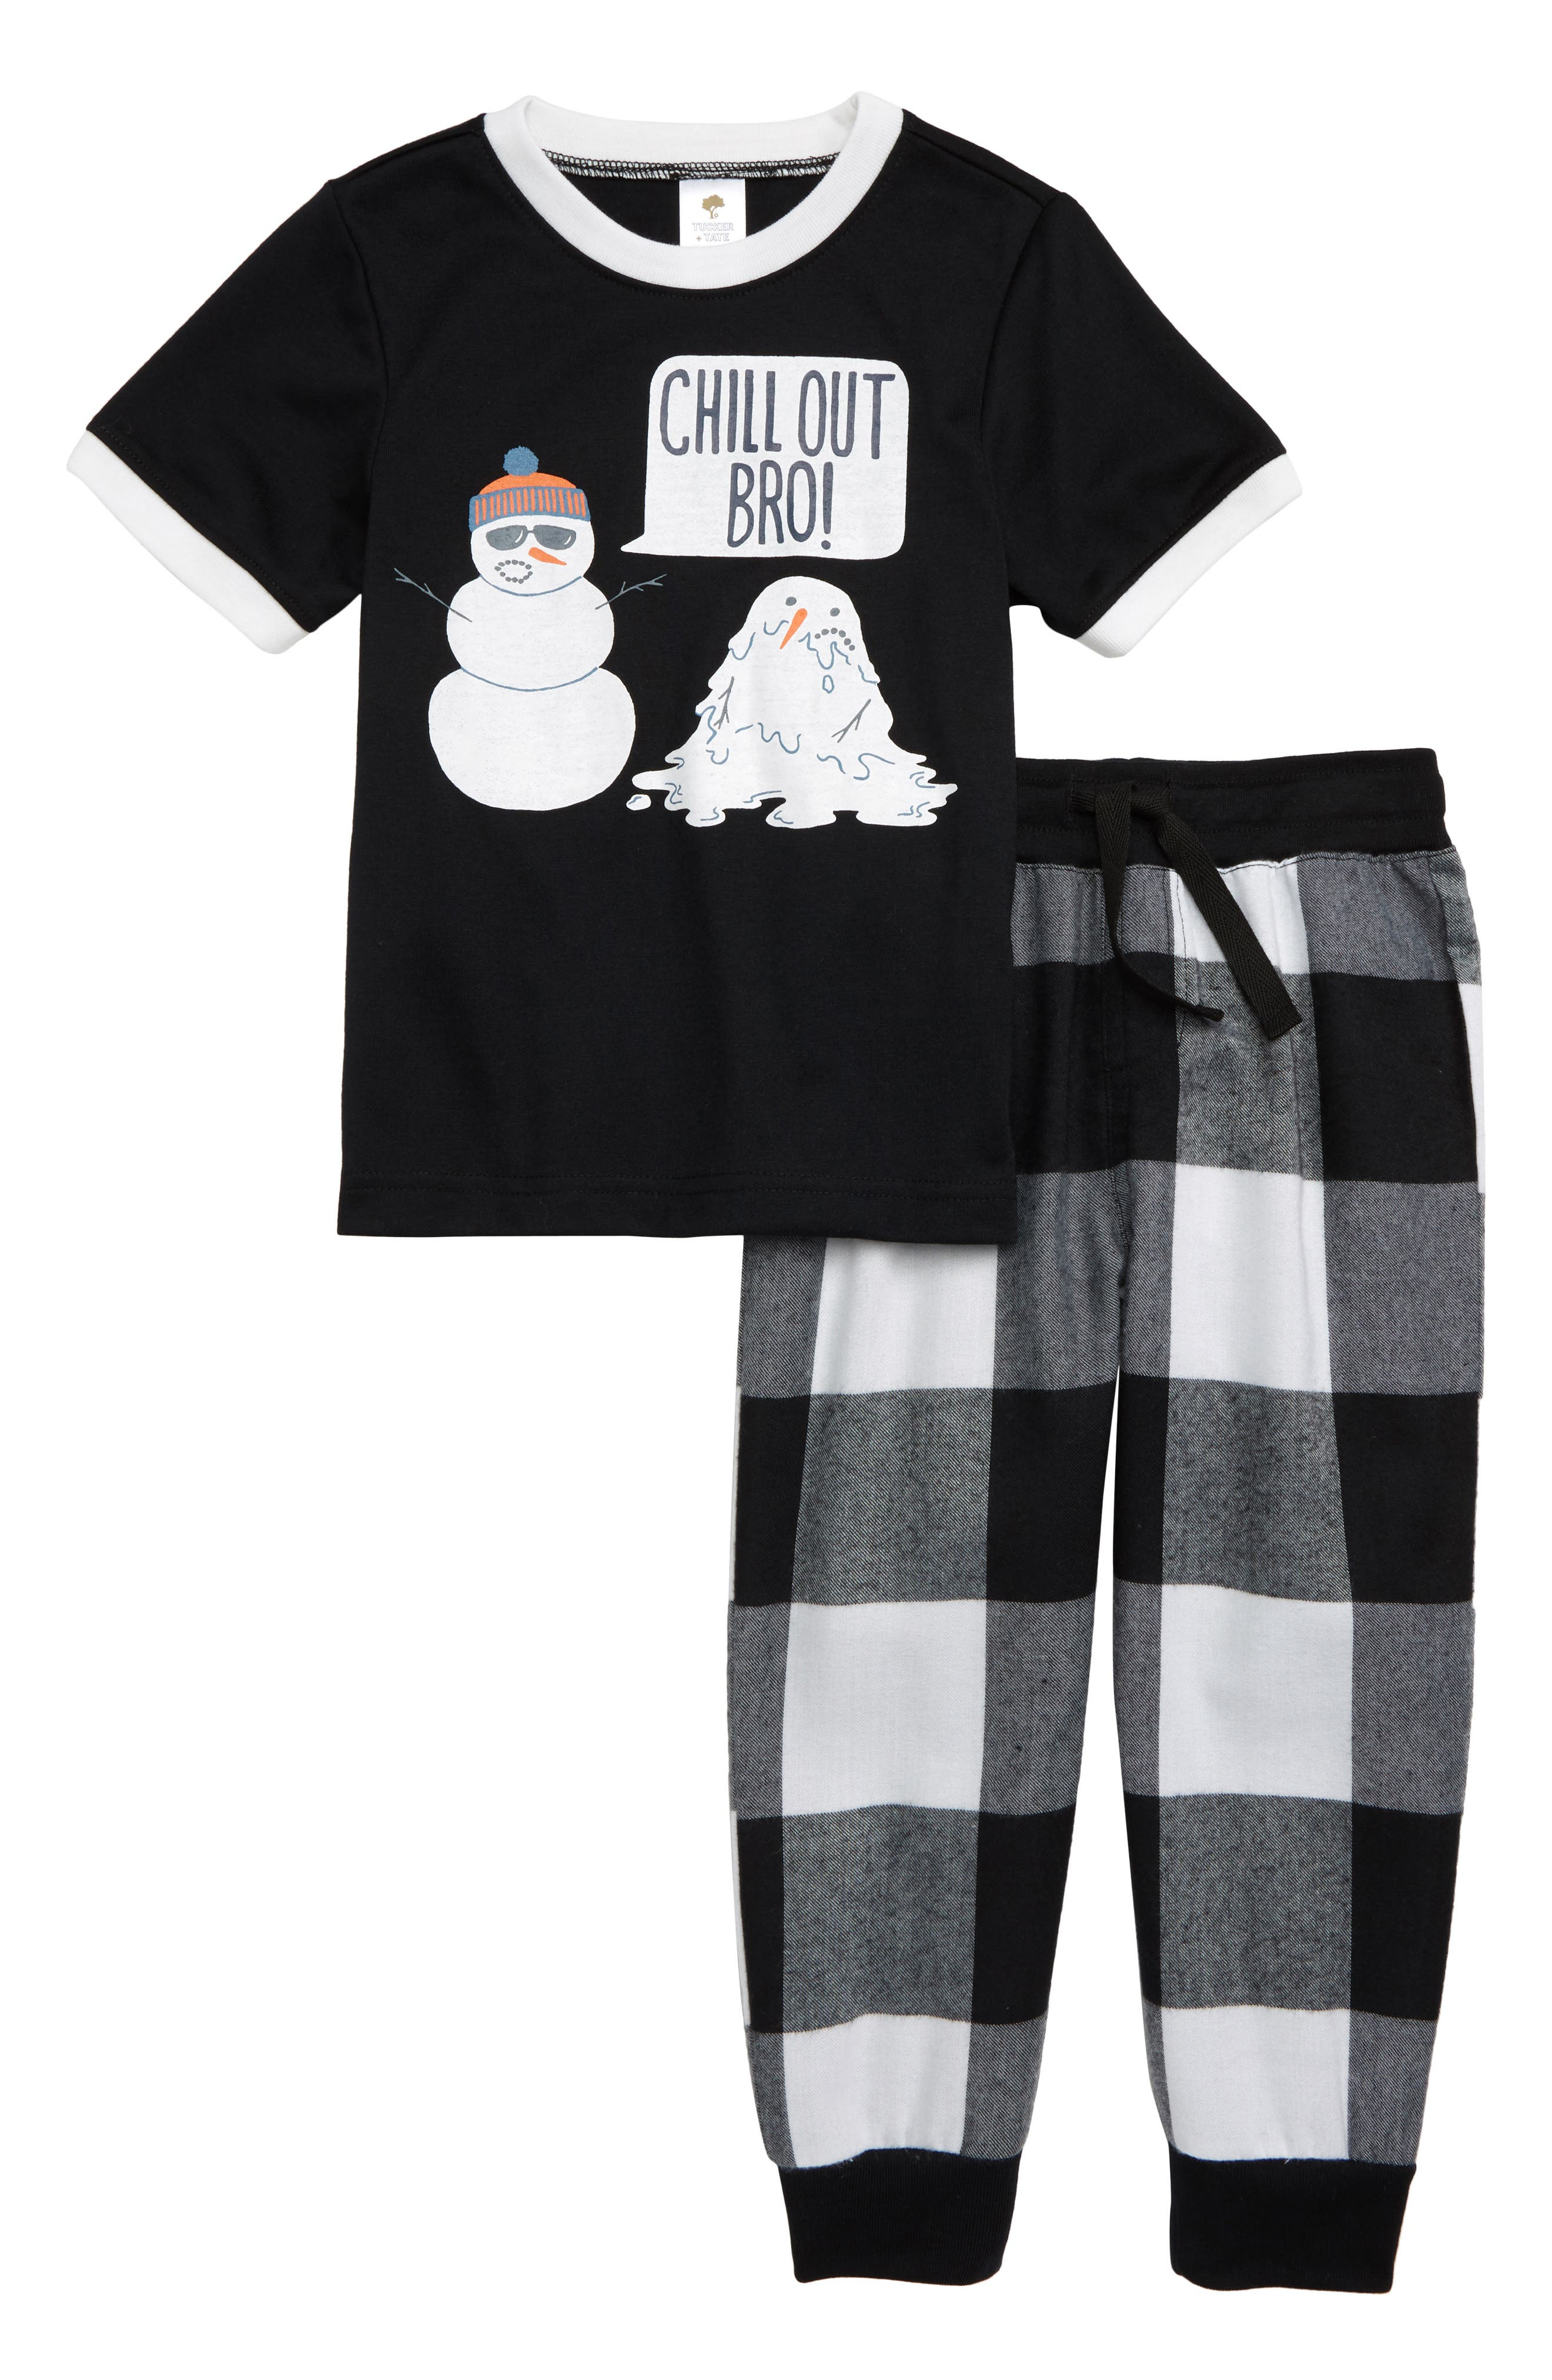 TUCKER + TATE Graphic Two-Piece Pajamas Set, Main, color, BLACK CHILL OUT